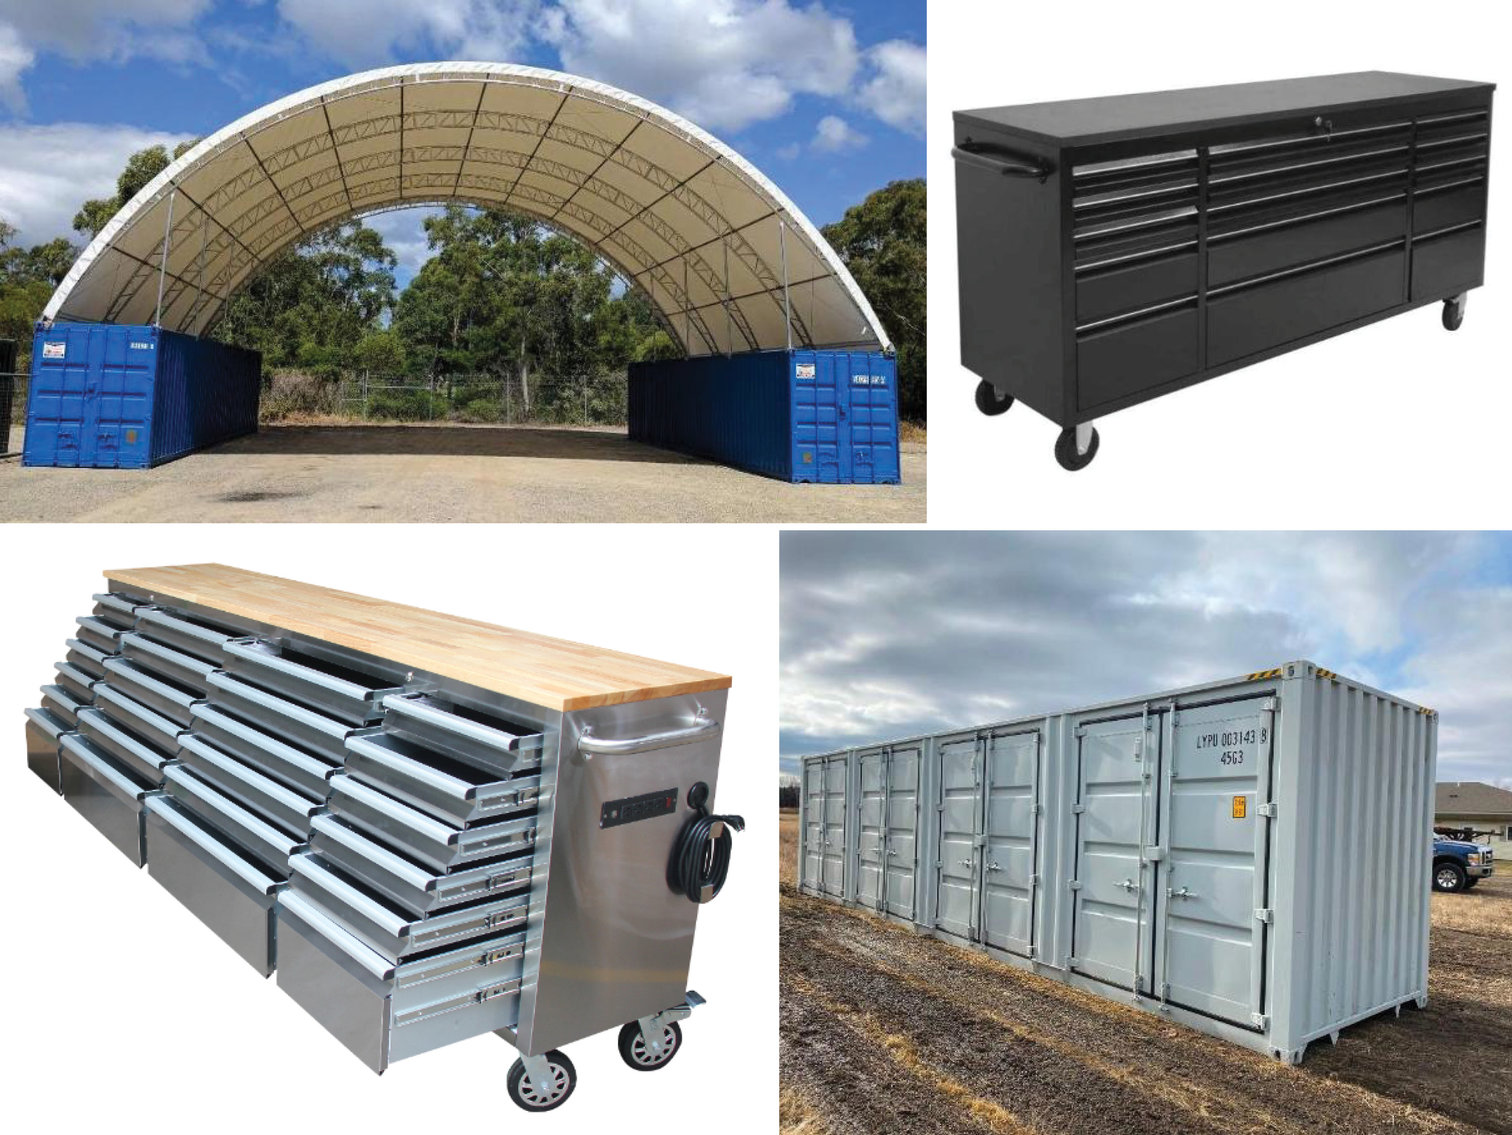 2020 40' Sea Container, New Tool Boxes, New Storage Buildings, New Shop Supplies